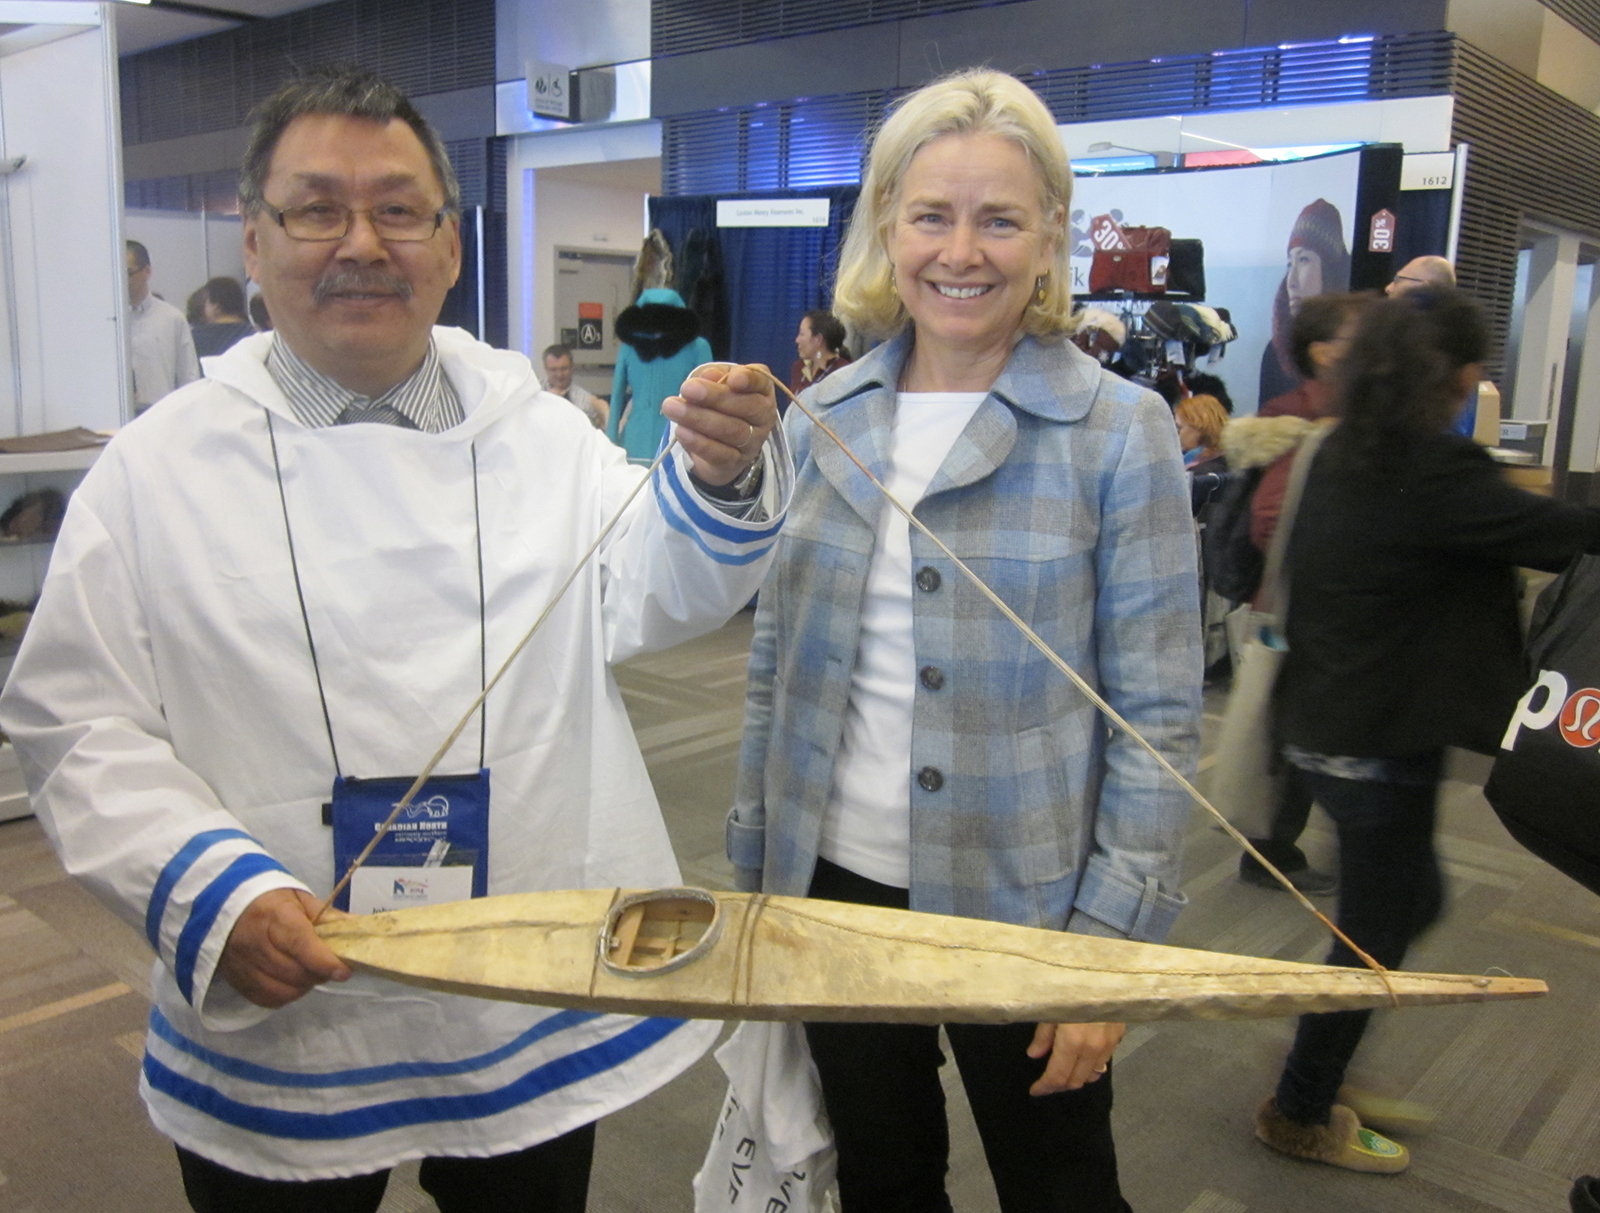 Johannes Lampe, President of the Nunatsiavut Government, and Rozanne Junker with Renatus' kayak